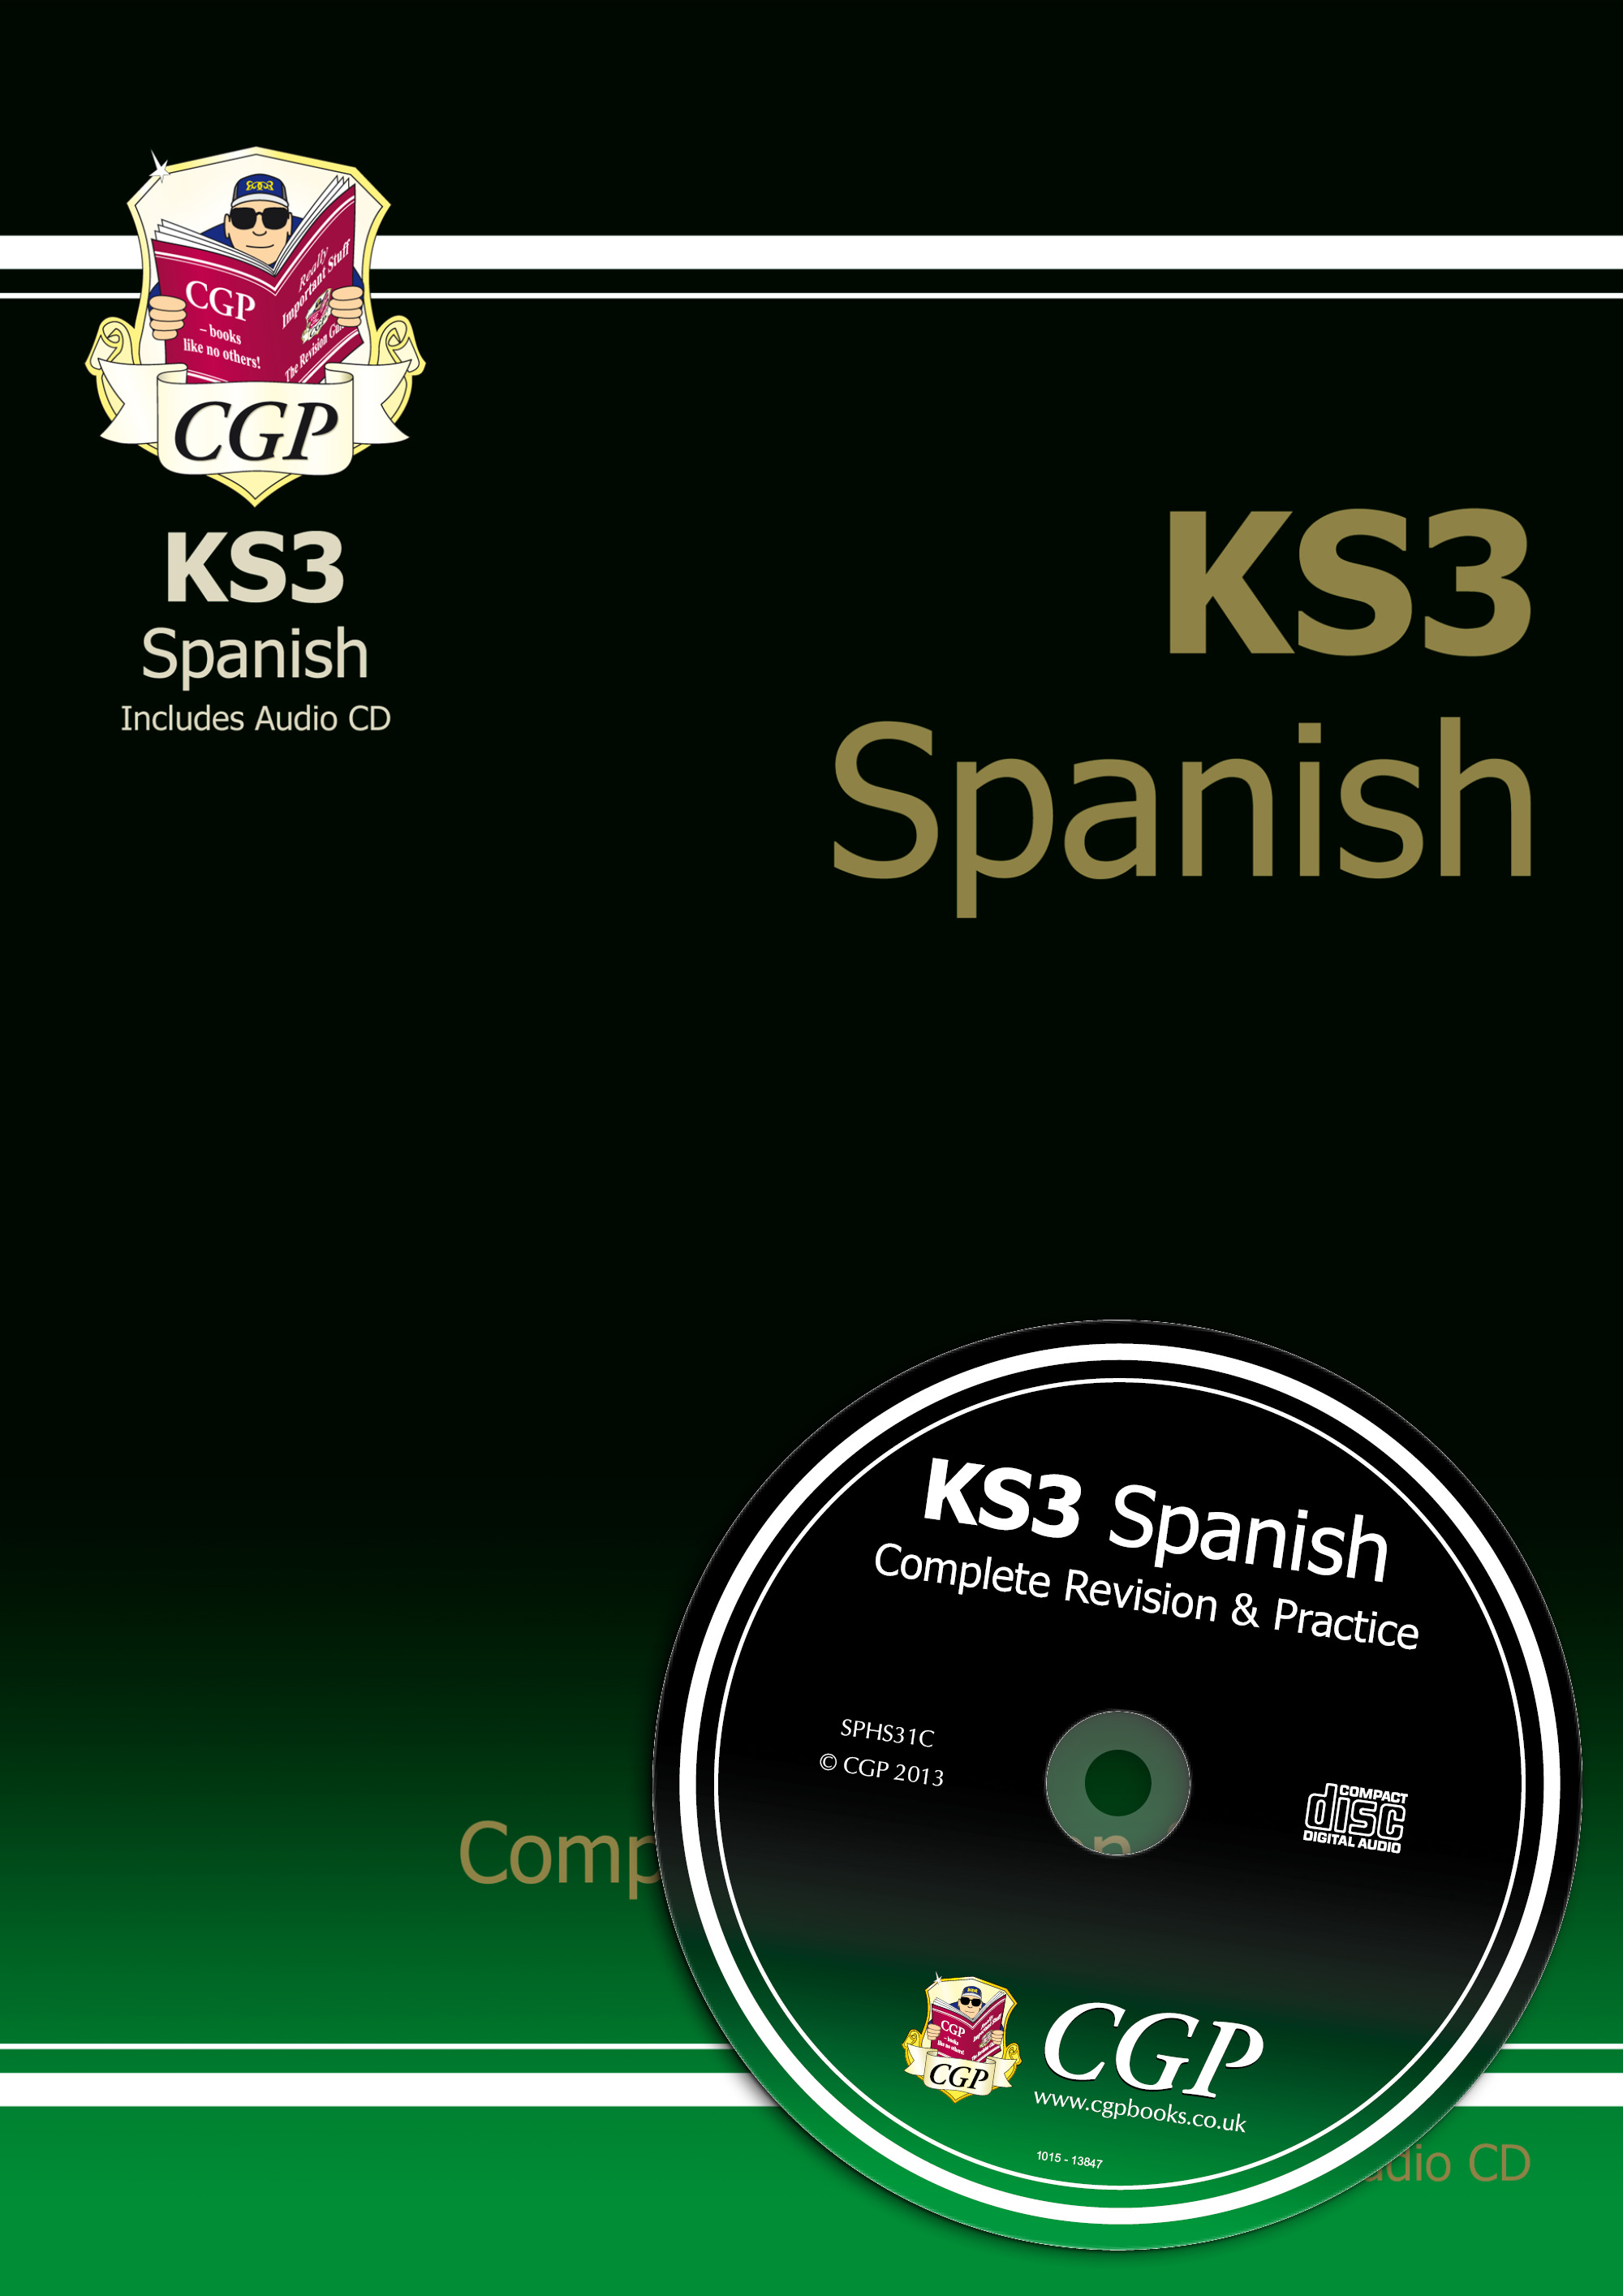 SPHS31 - KS3 Spanish Complete Revision & Practice with Audio CD